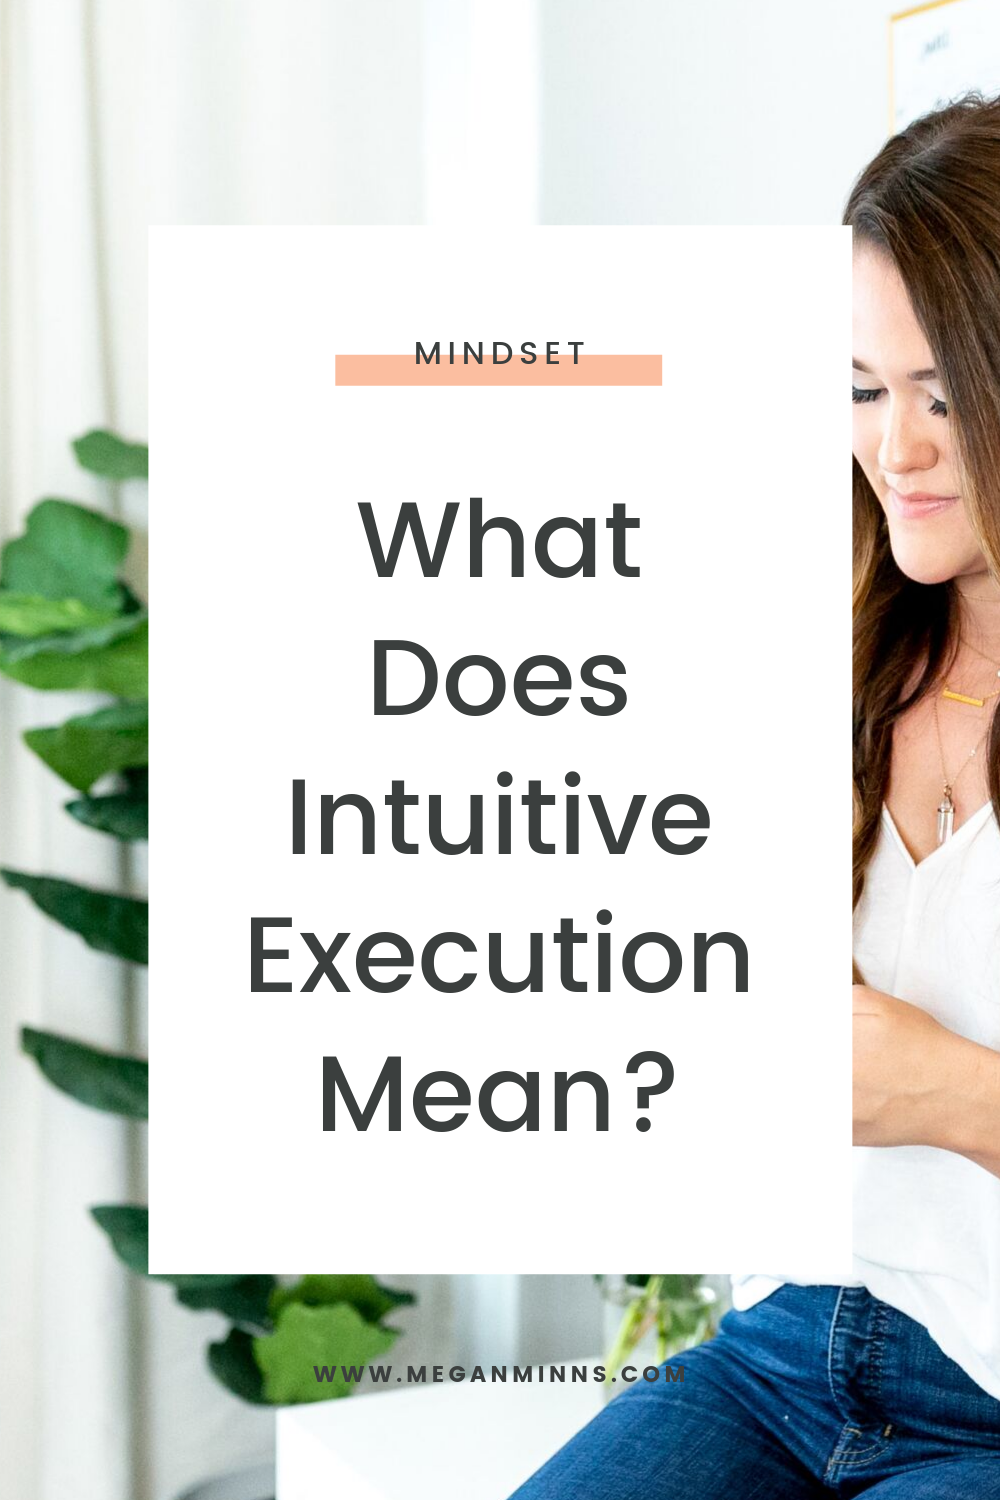 In this episode, we're talking about what it means to intuitively execute and how it can help you in your life. I share some behind the scenes of how Intuitive Execution™ came to be, my journey intuitively executing, and how I've helped women around the world change their lives and businesses.   READ THE FULL BLOG POST ➡️ https://meganminns.com/blog/what-is-intuitive-execution